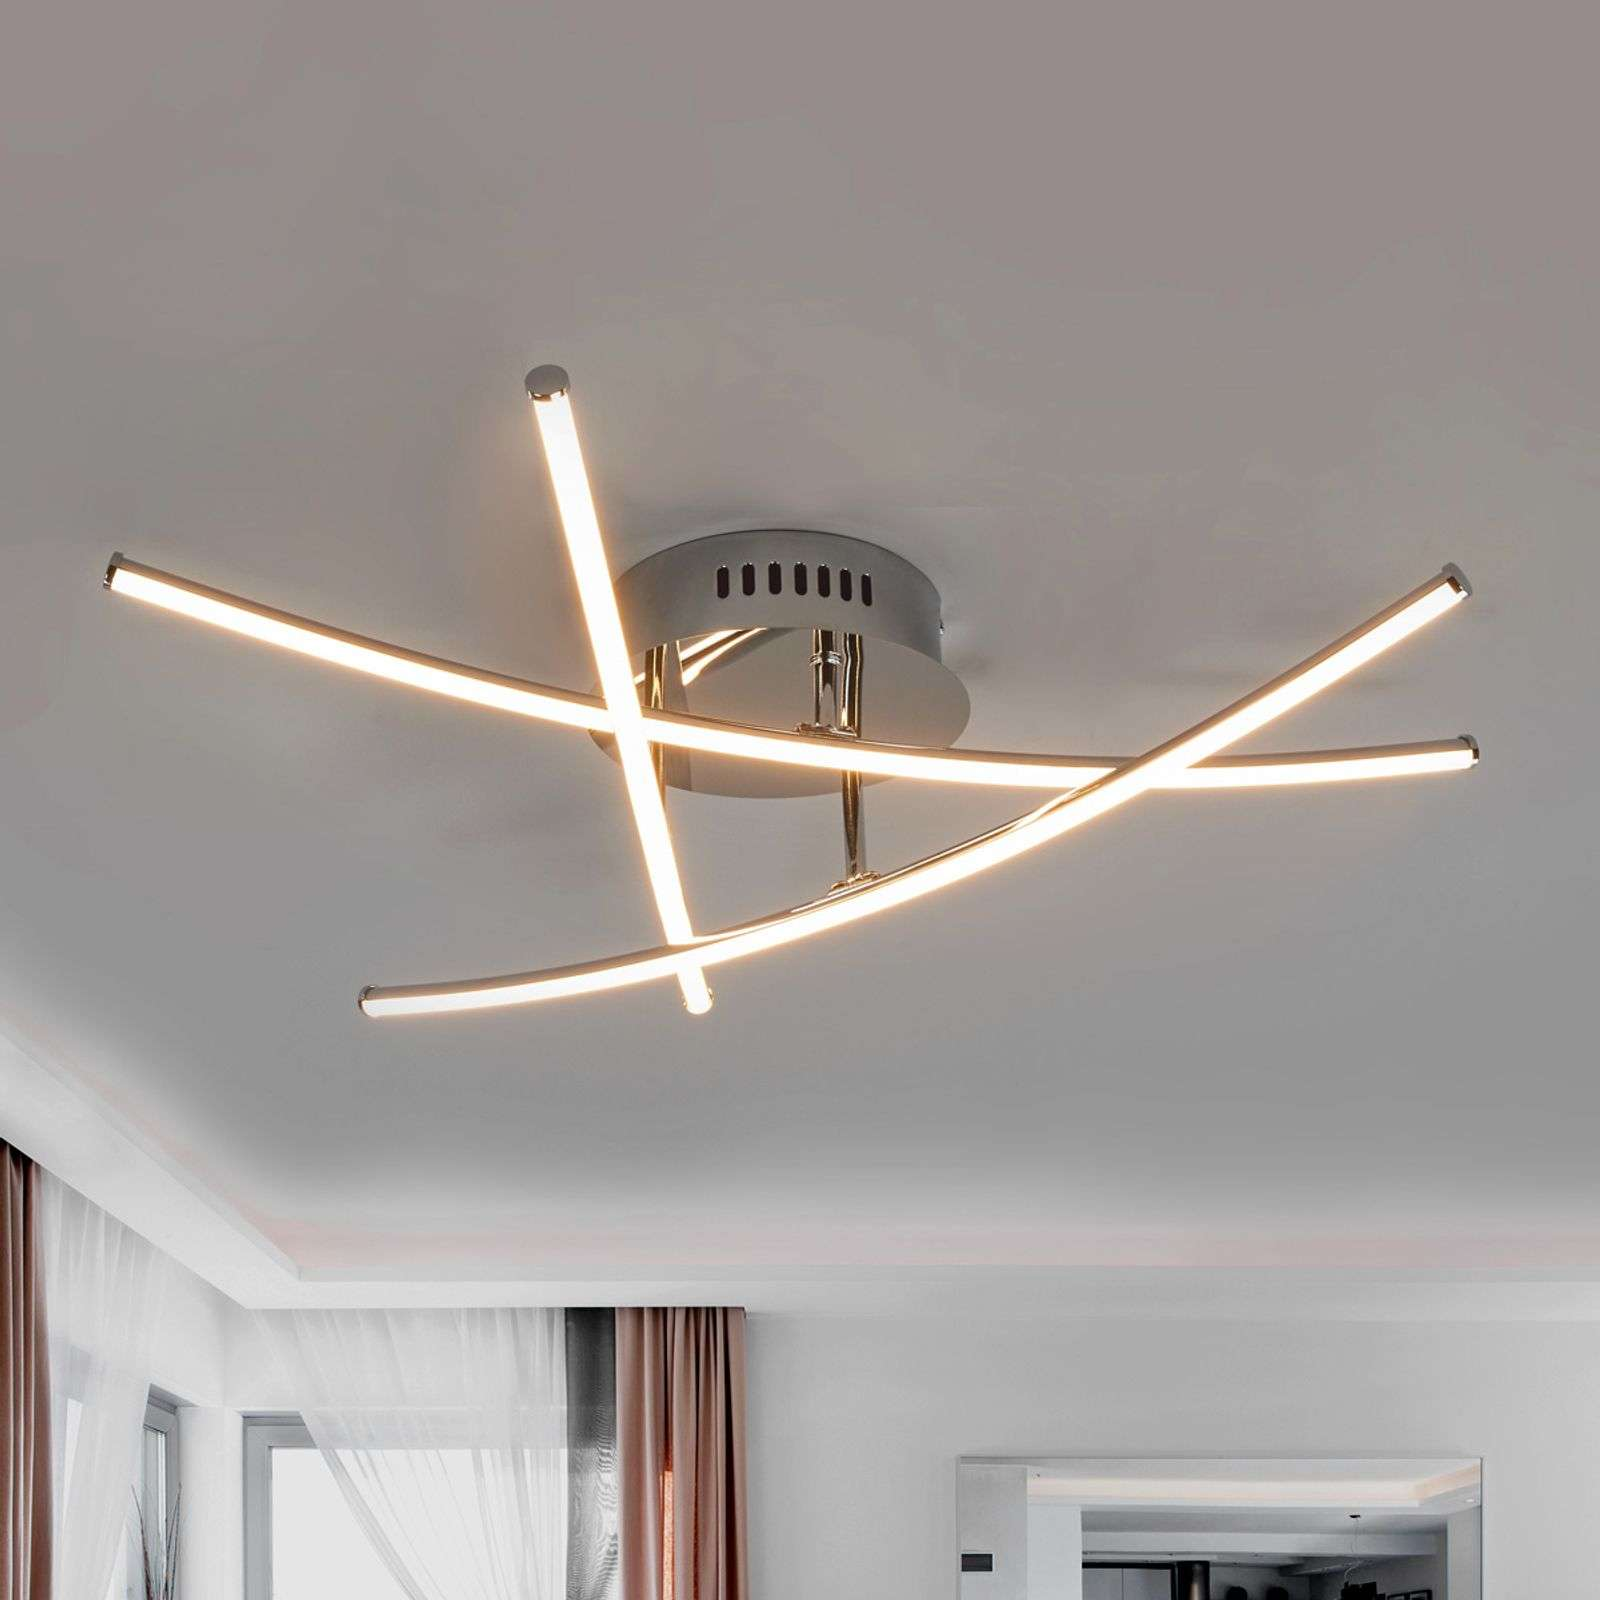 Yael - lampada LED da soffitto a barre incrociate